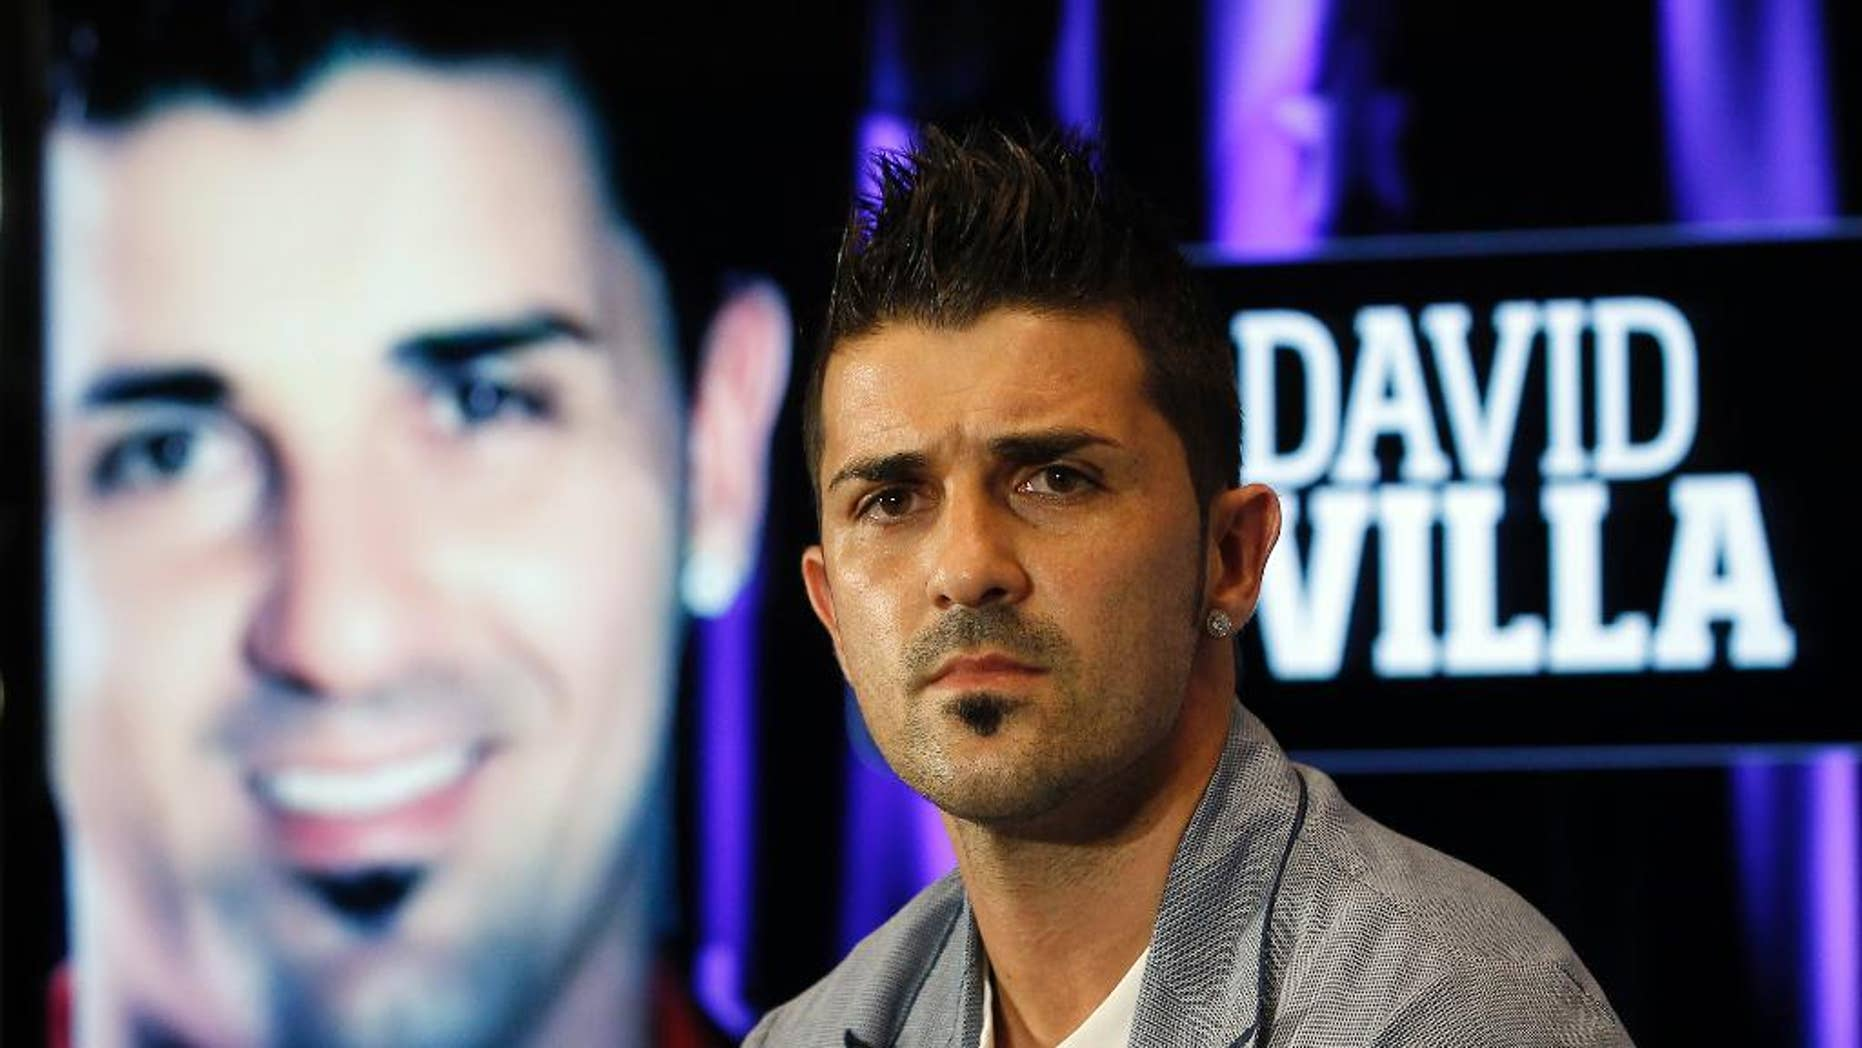 FILE - This is a July 15, 2013 file photo showing Atletico de Madrid's soccer player  David Villa during his presentation at the Vicente Calderon Stadium in Madrid. Villa has signed a three-year contract with New York City FC, becoming the first player on the expansion Major League Soccer team that starts play next season. (AP Photo/Andres Kudacki, File)